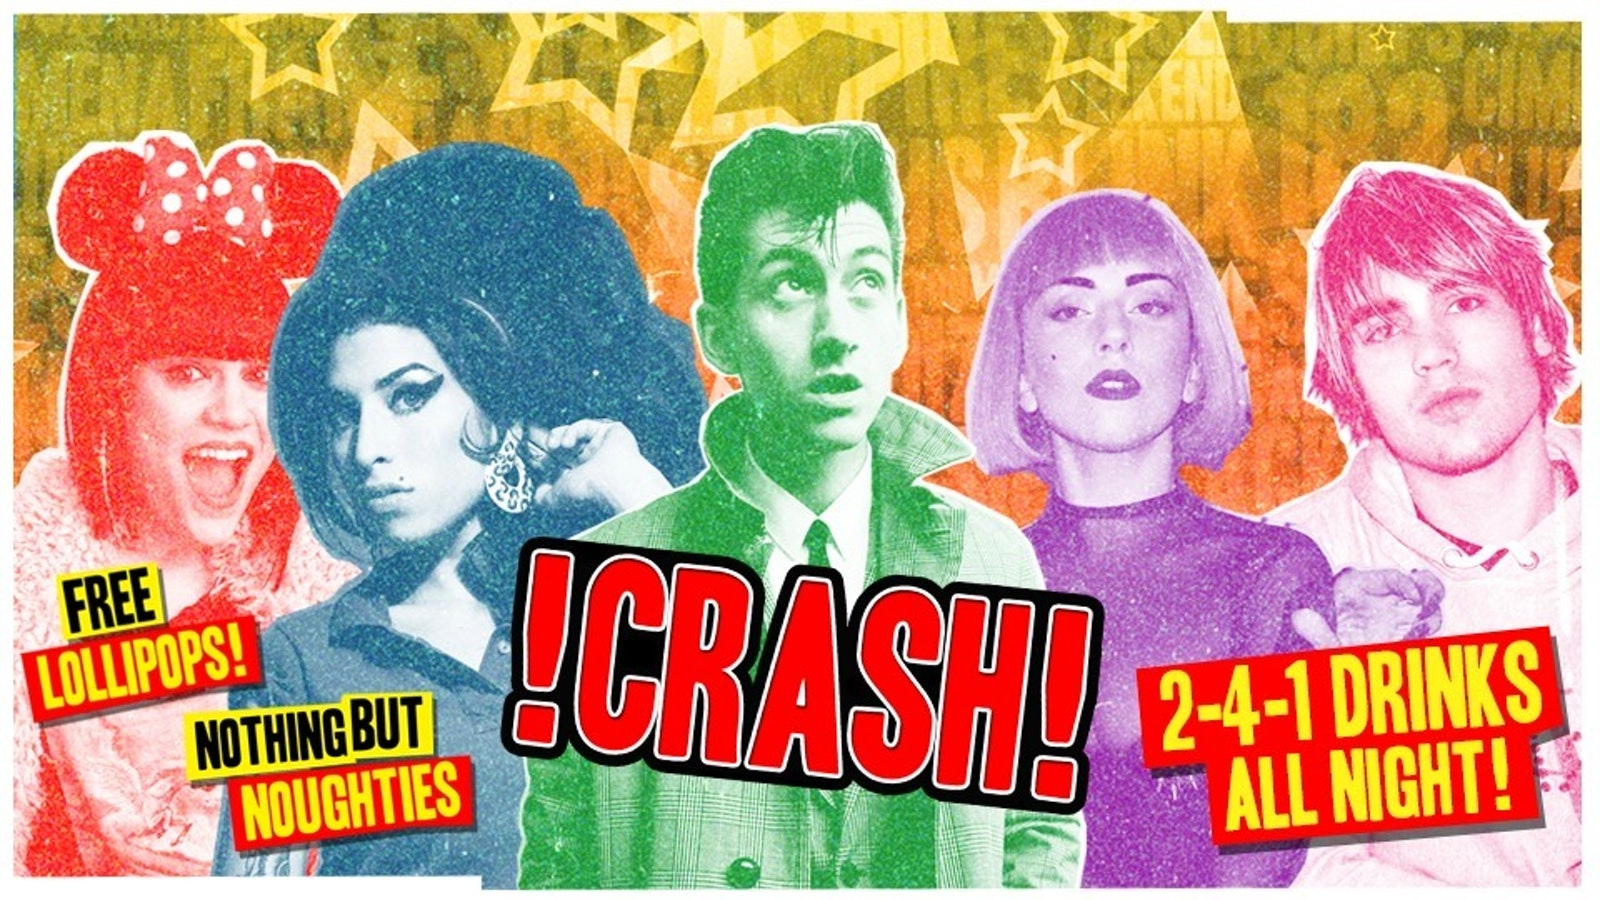 CRASH – Nothing But Noughties!